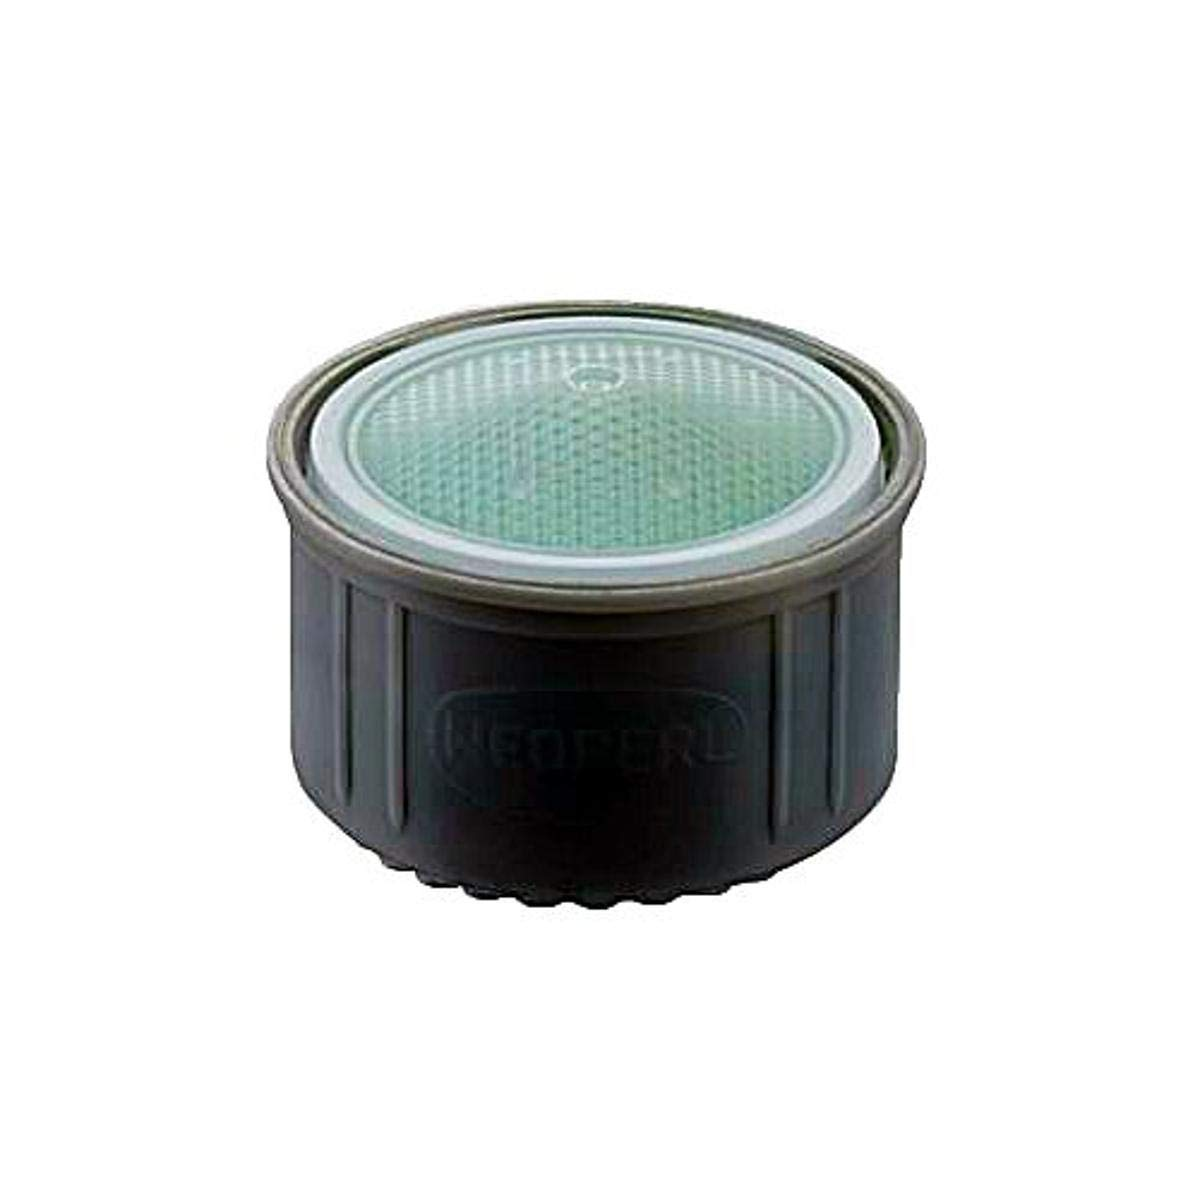 Silicone Tip Acetal 1.5 GPM No Washer Neoperl 31 7350 3 PCA Spray ITR Economy Flow Aerator Insert Pack of 6 Regular Full Coverage Rain Spray Green//Clear Dome